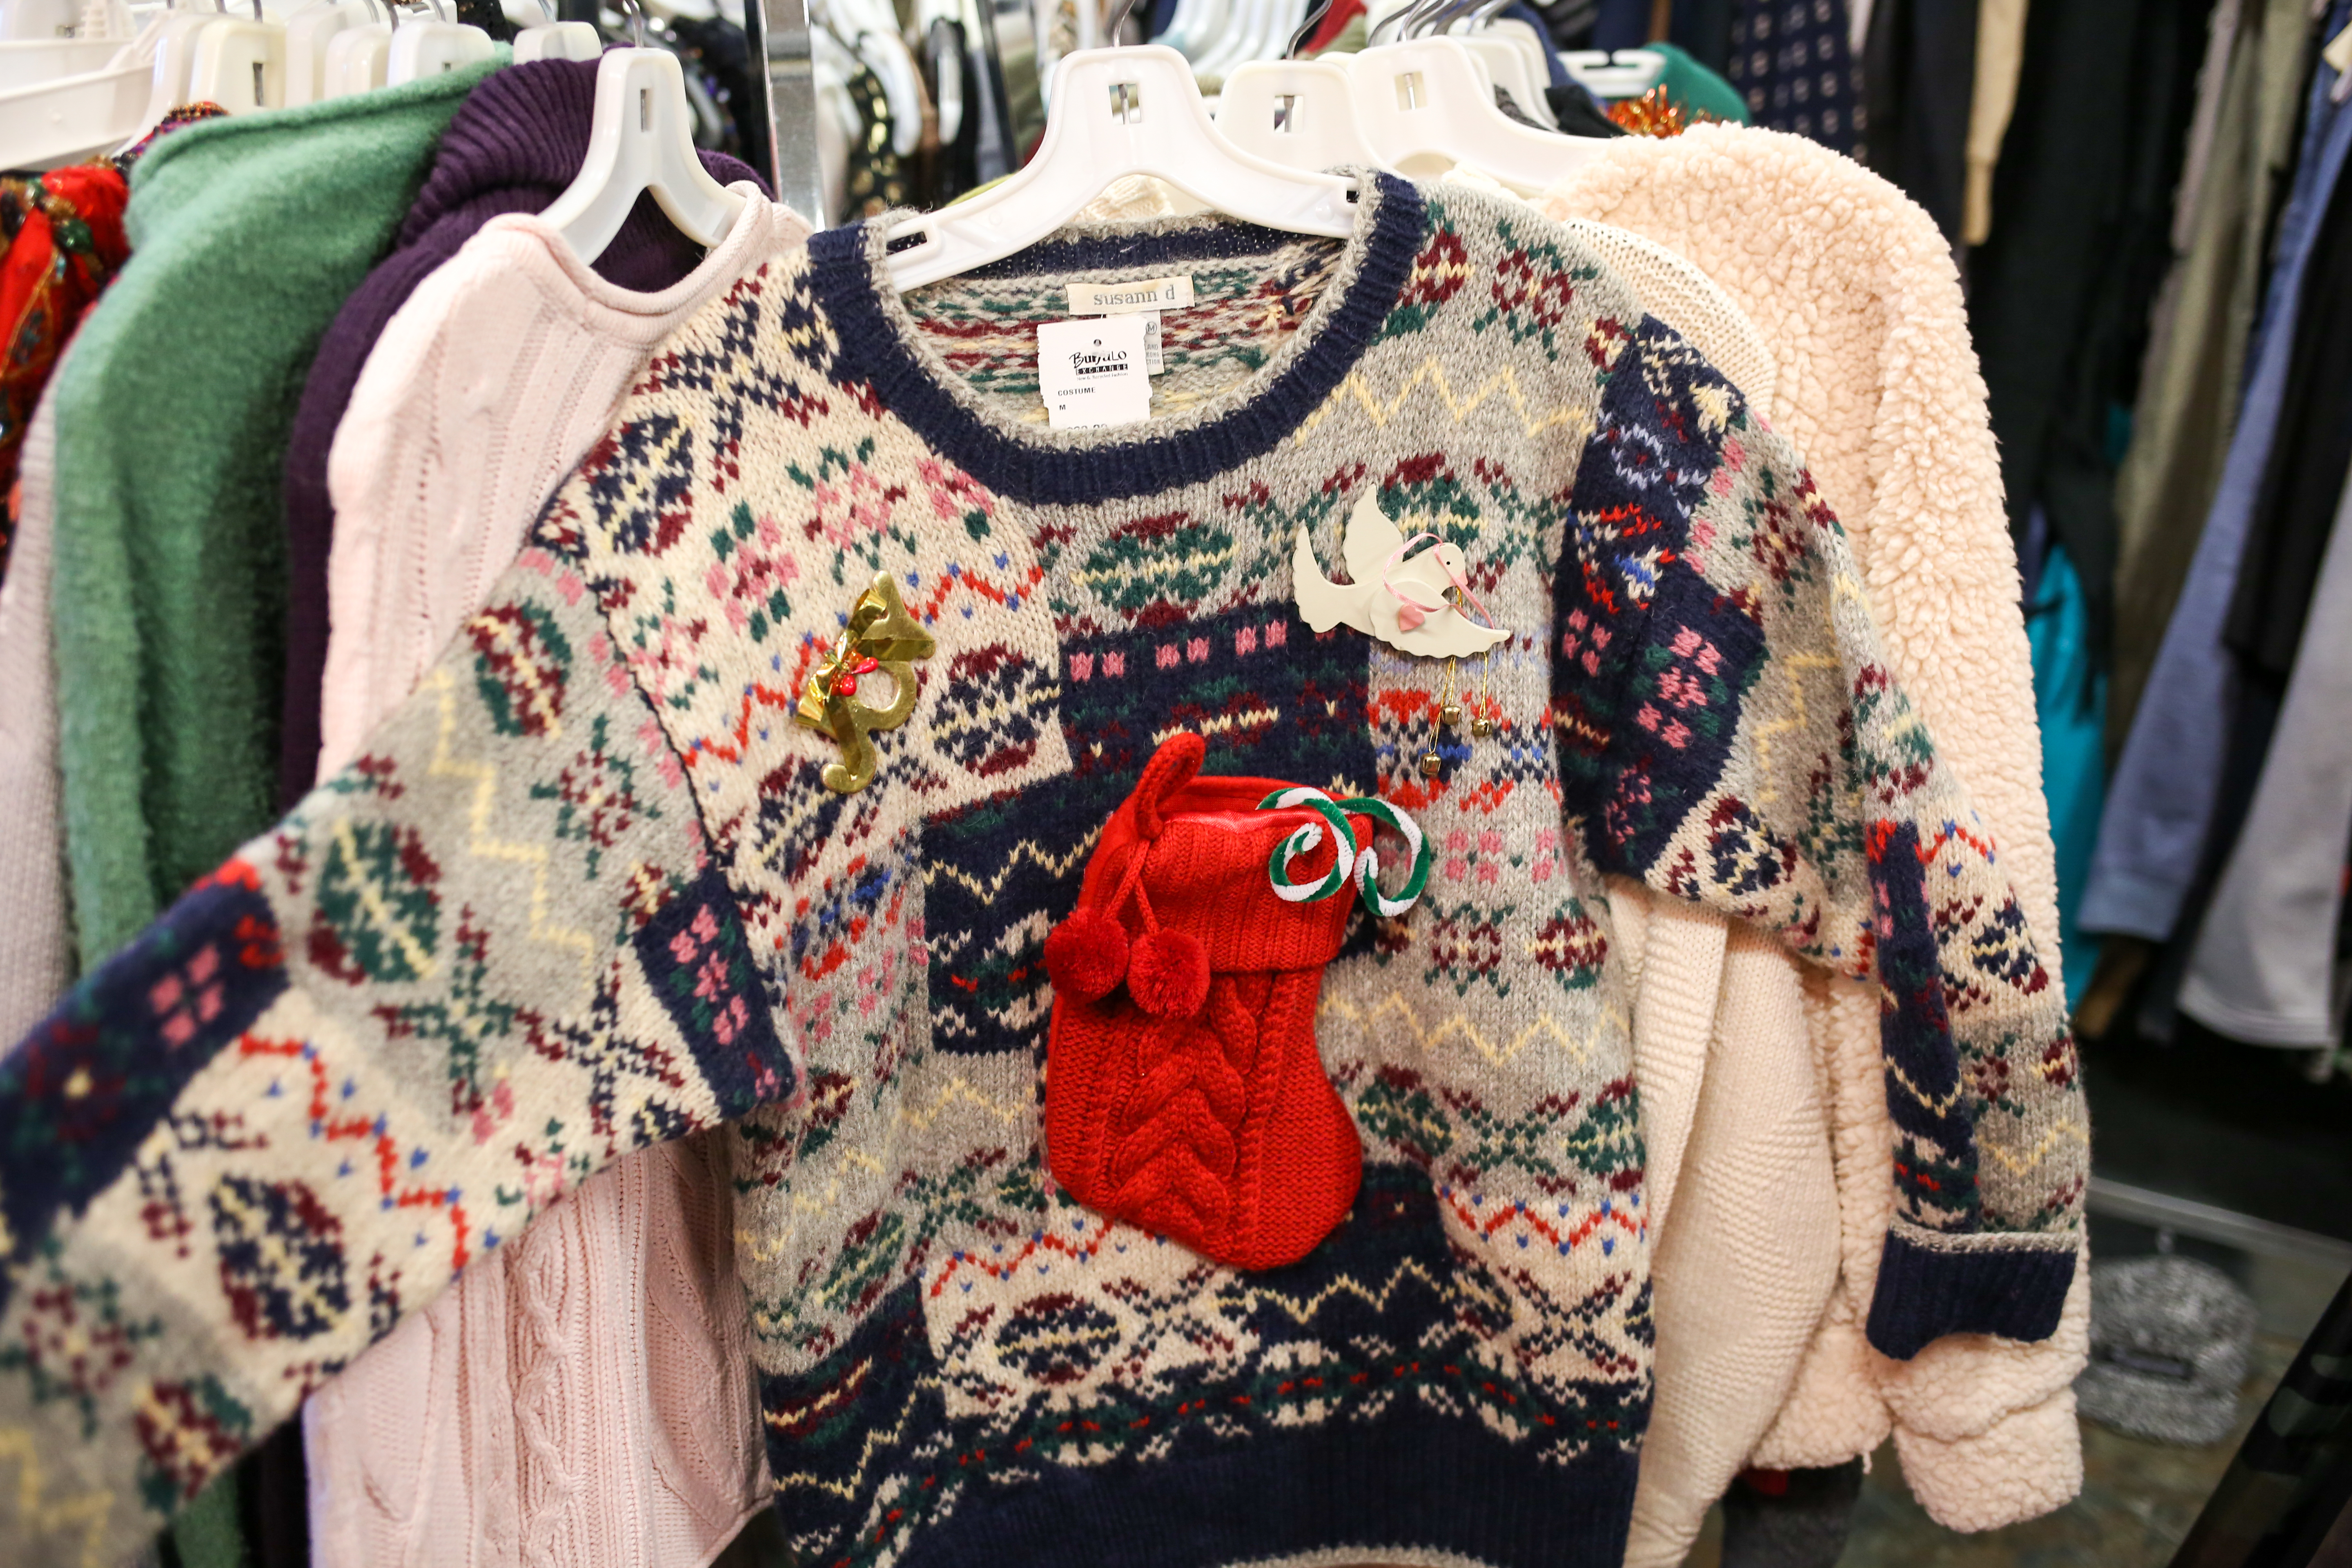 Buffalo Exchange,{ }1318 14th St NW - $30 (Amanda Andrade-Rhoades/DC Refined)